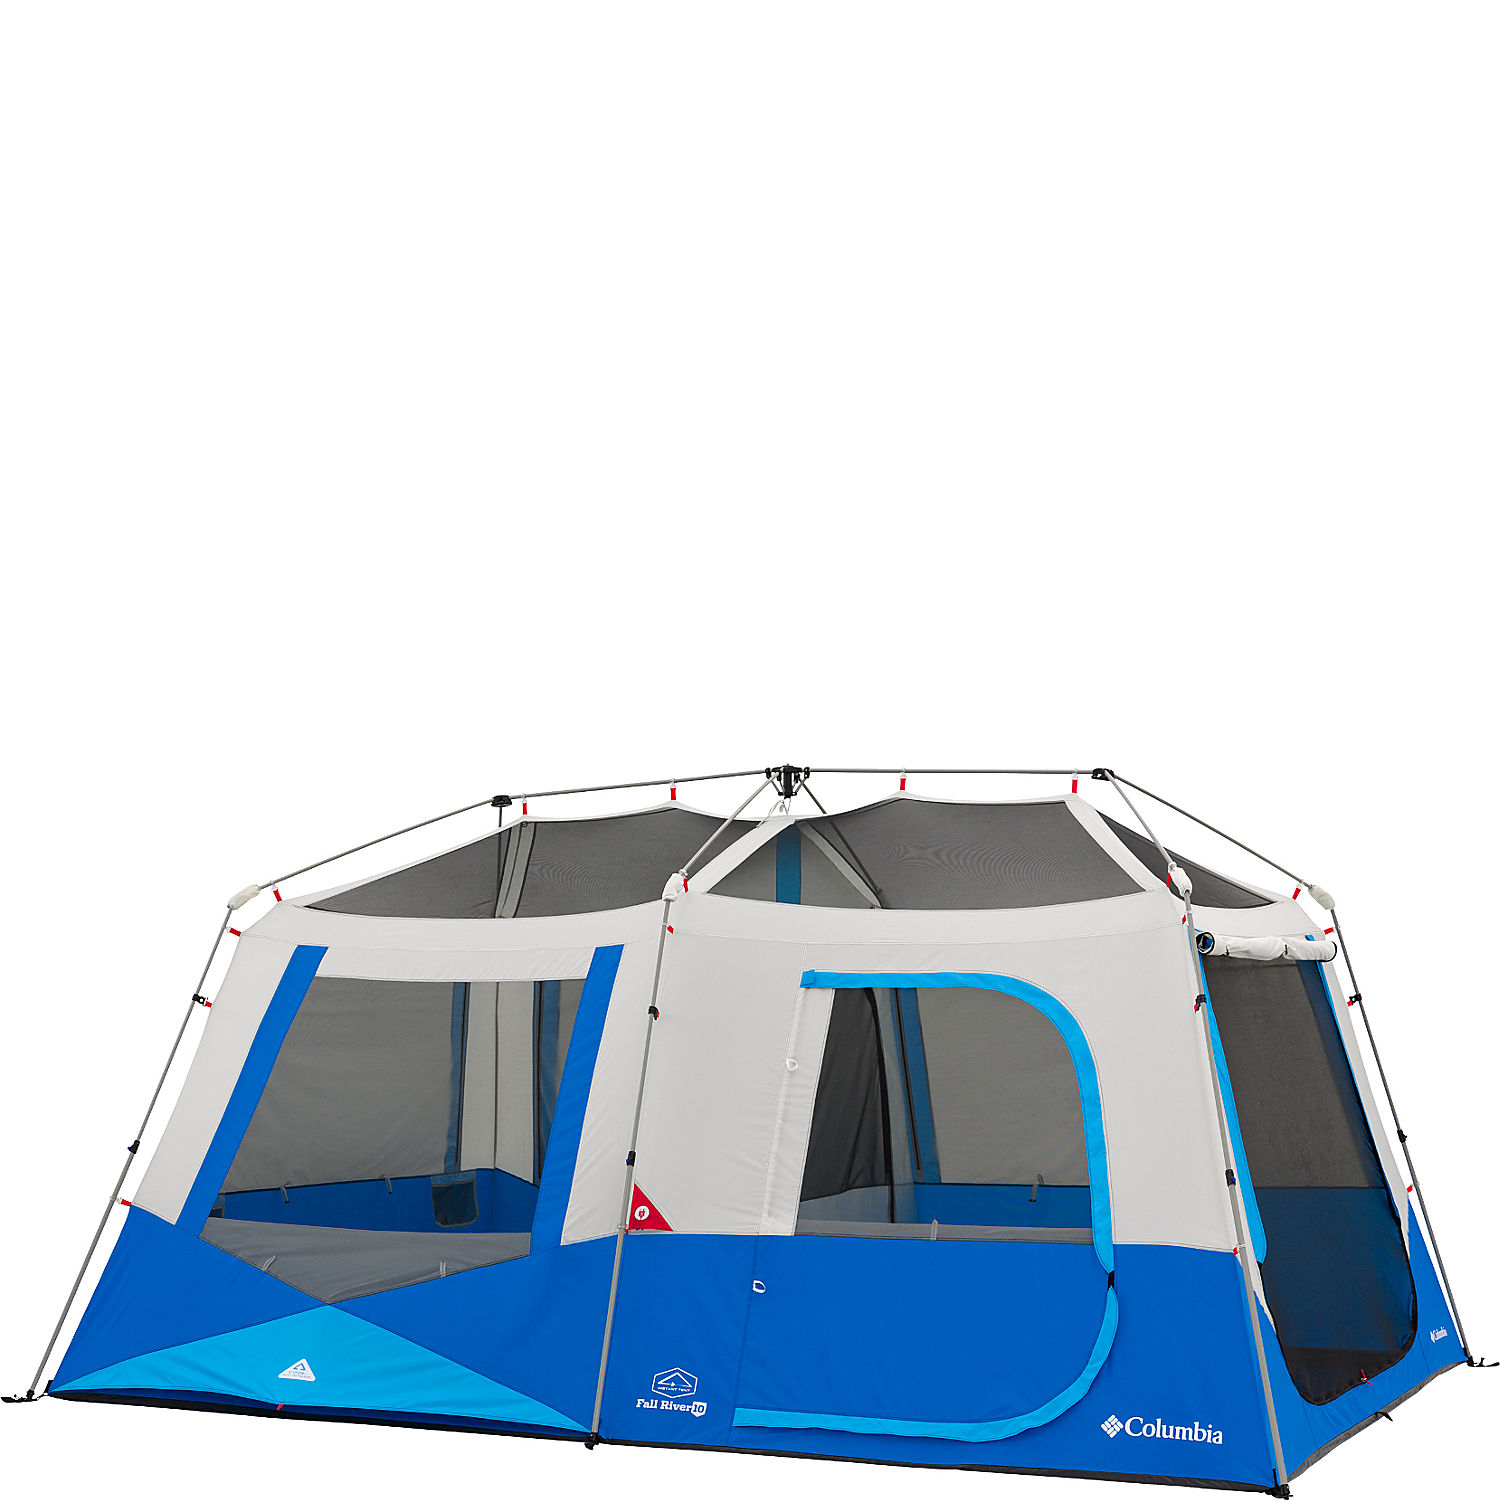 Columbia Fall River 10 Person Instant Dome Tent Ebags Com